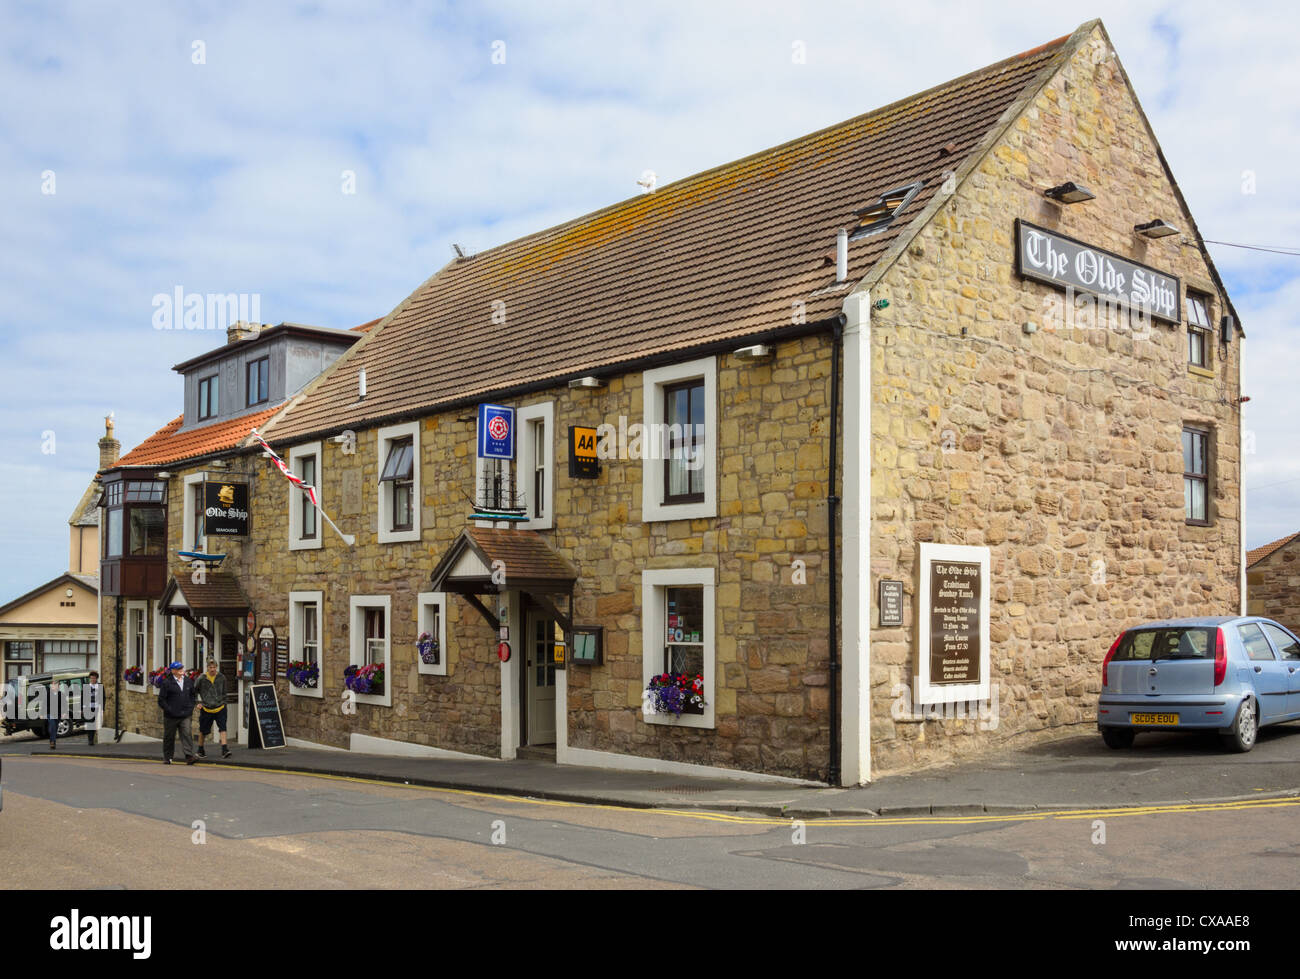 A traditional village pub in the small coastal village of Seahouses, Northumberland. - Stock Image